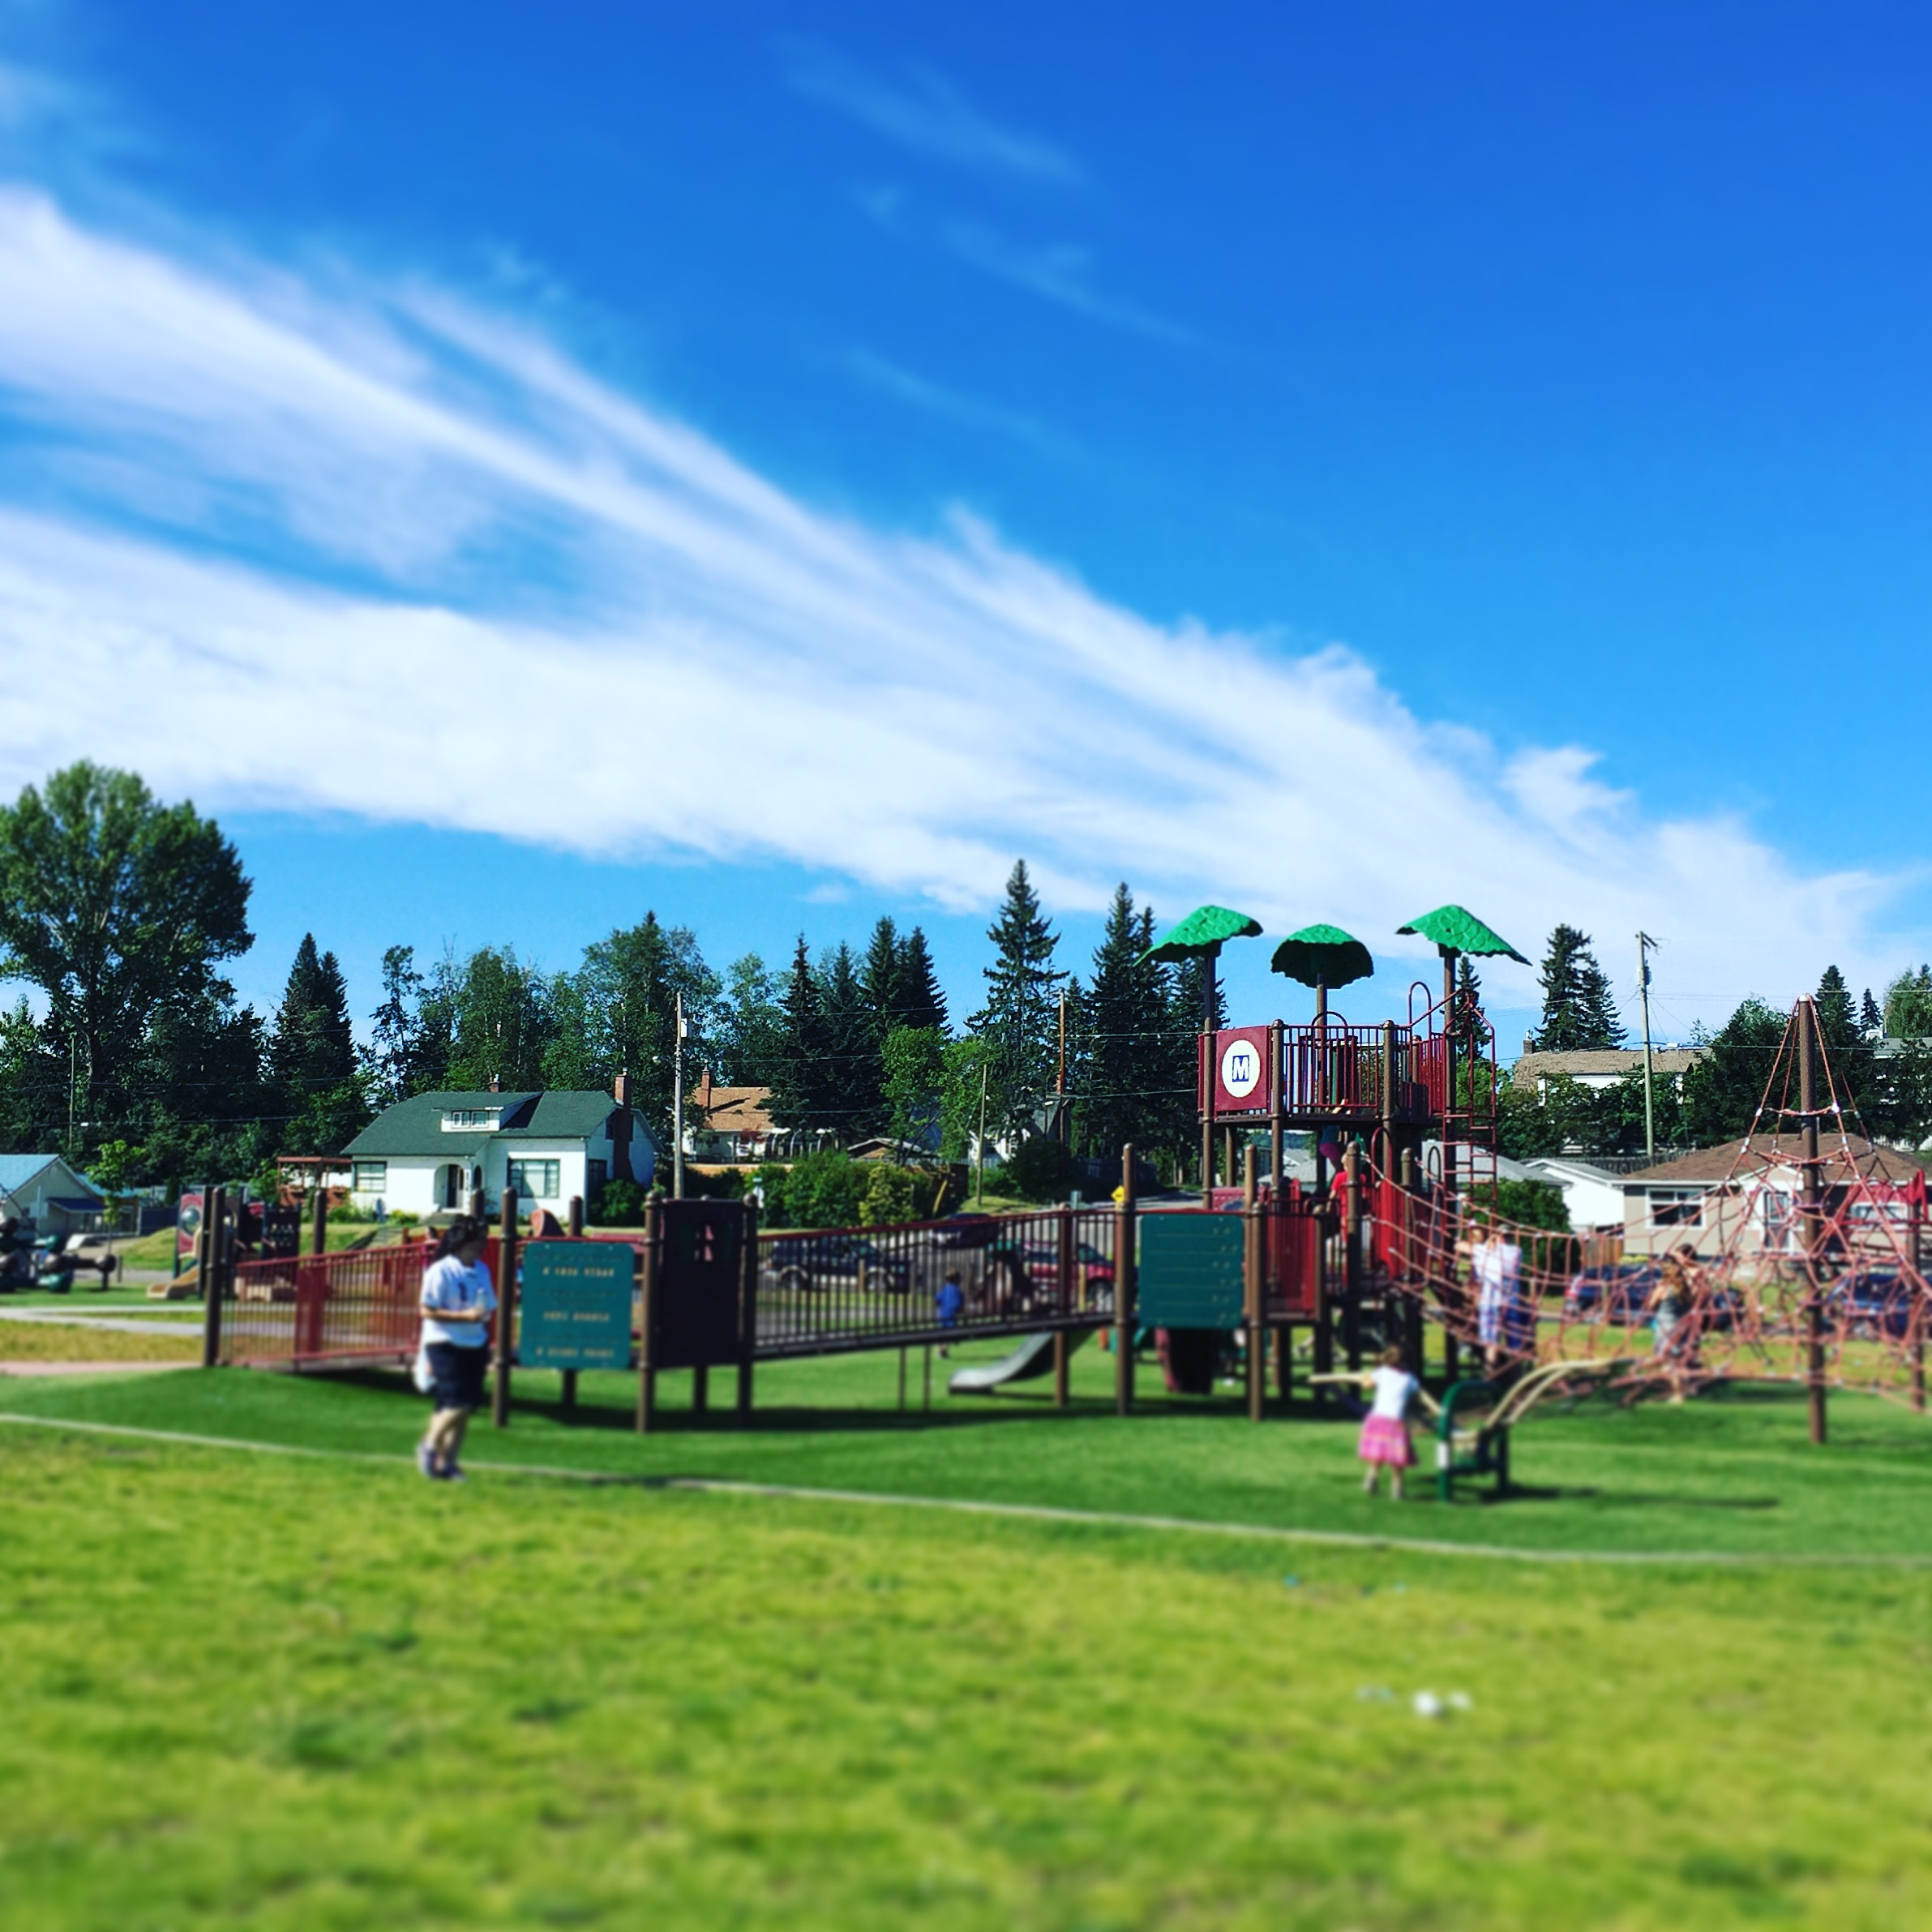 Playground seen during our explore Prince George by bus trip